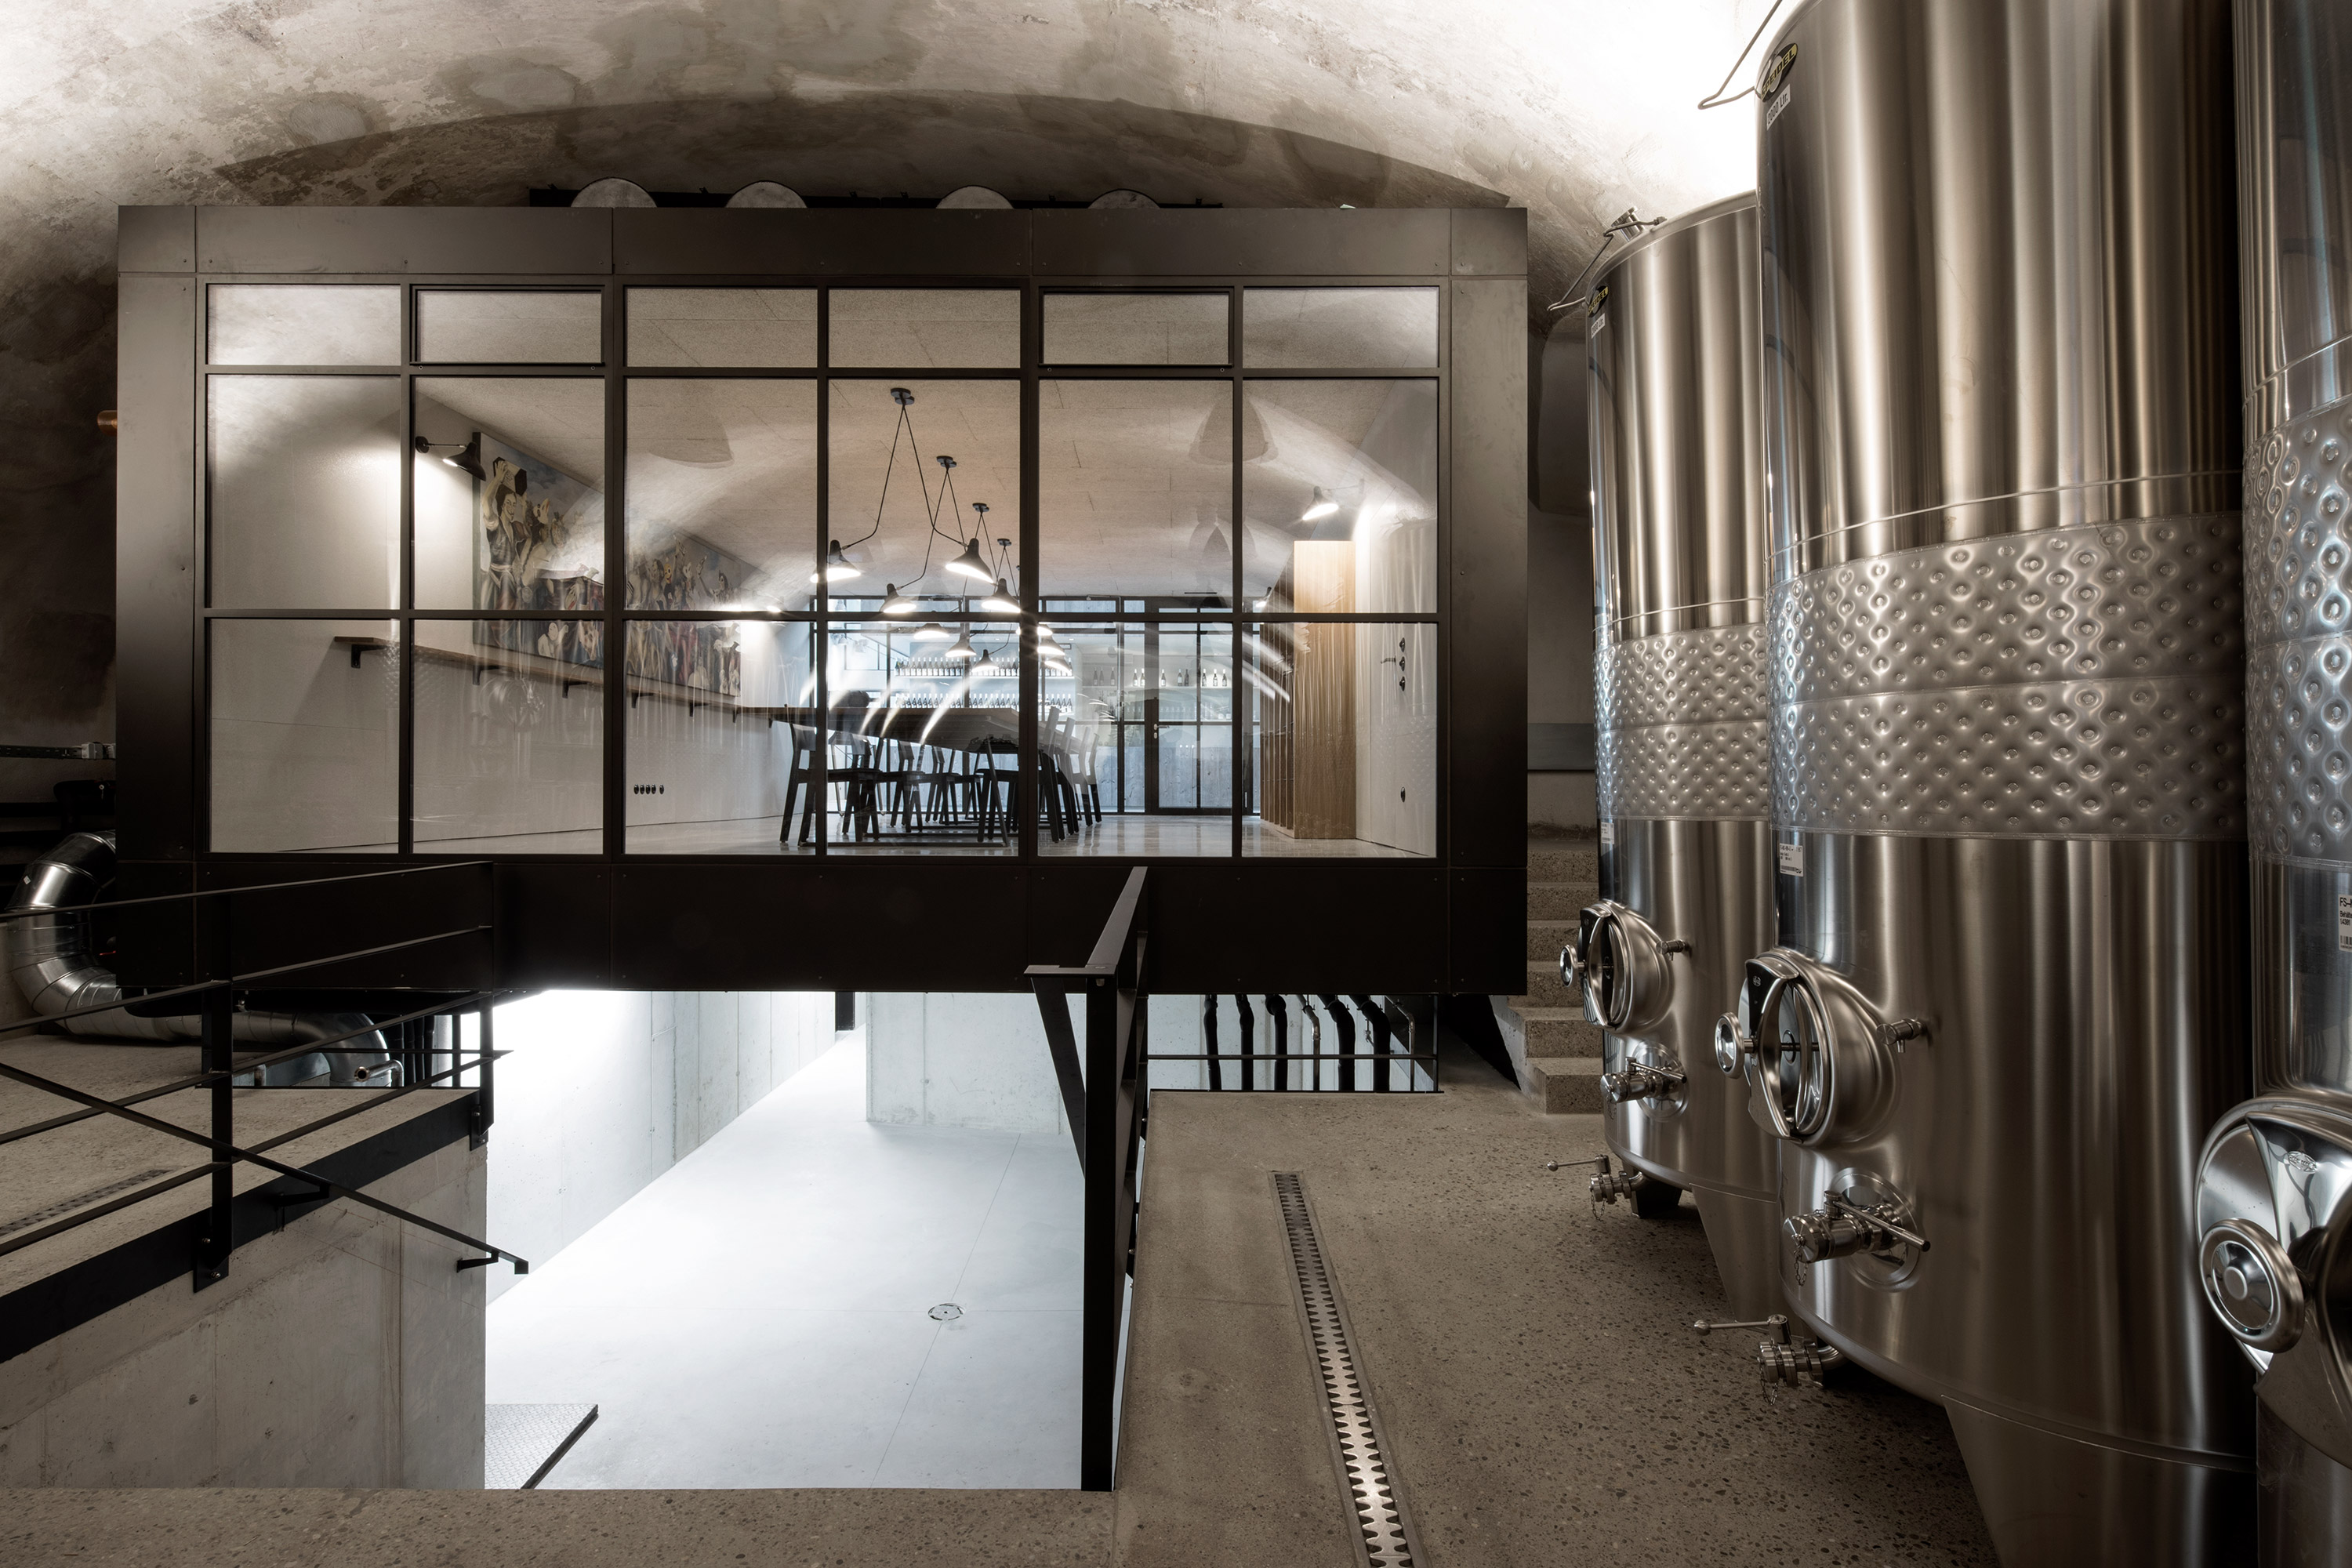 Winery Clemens Strobl